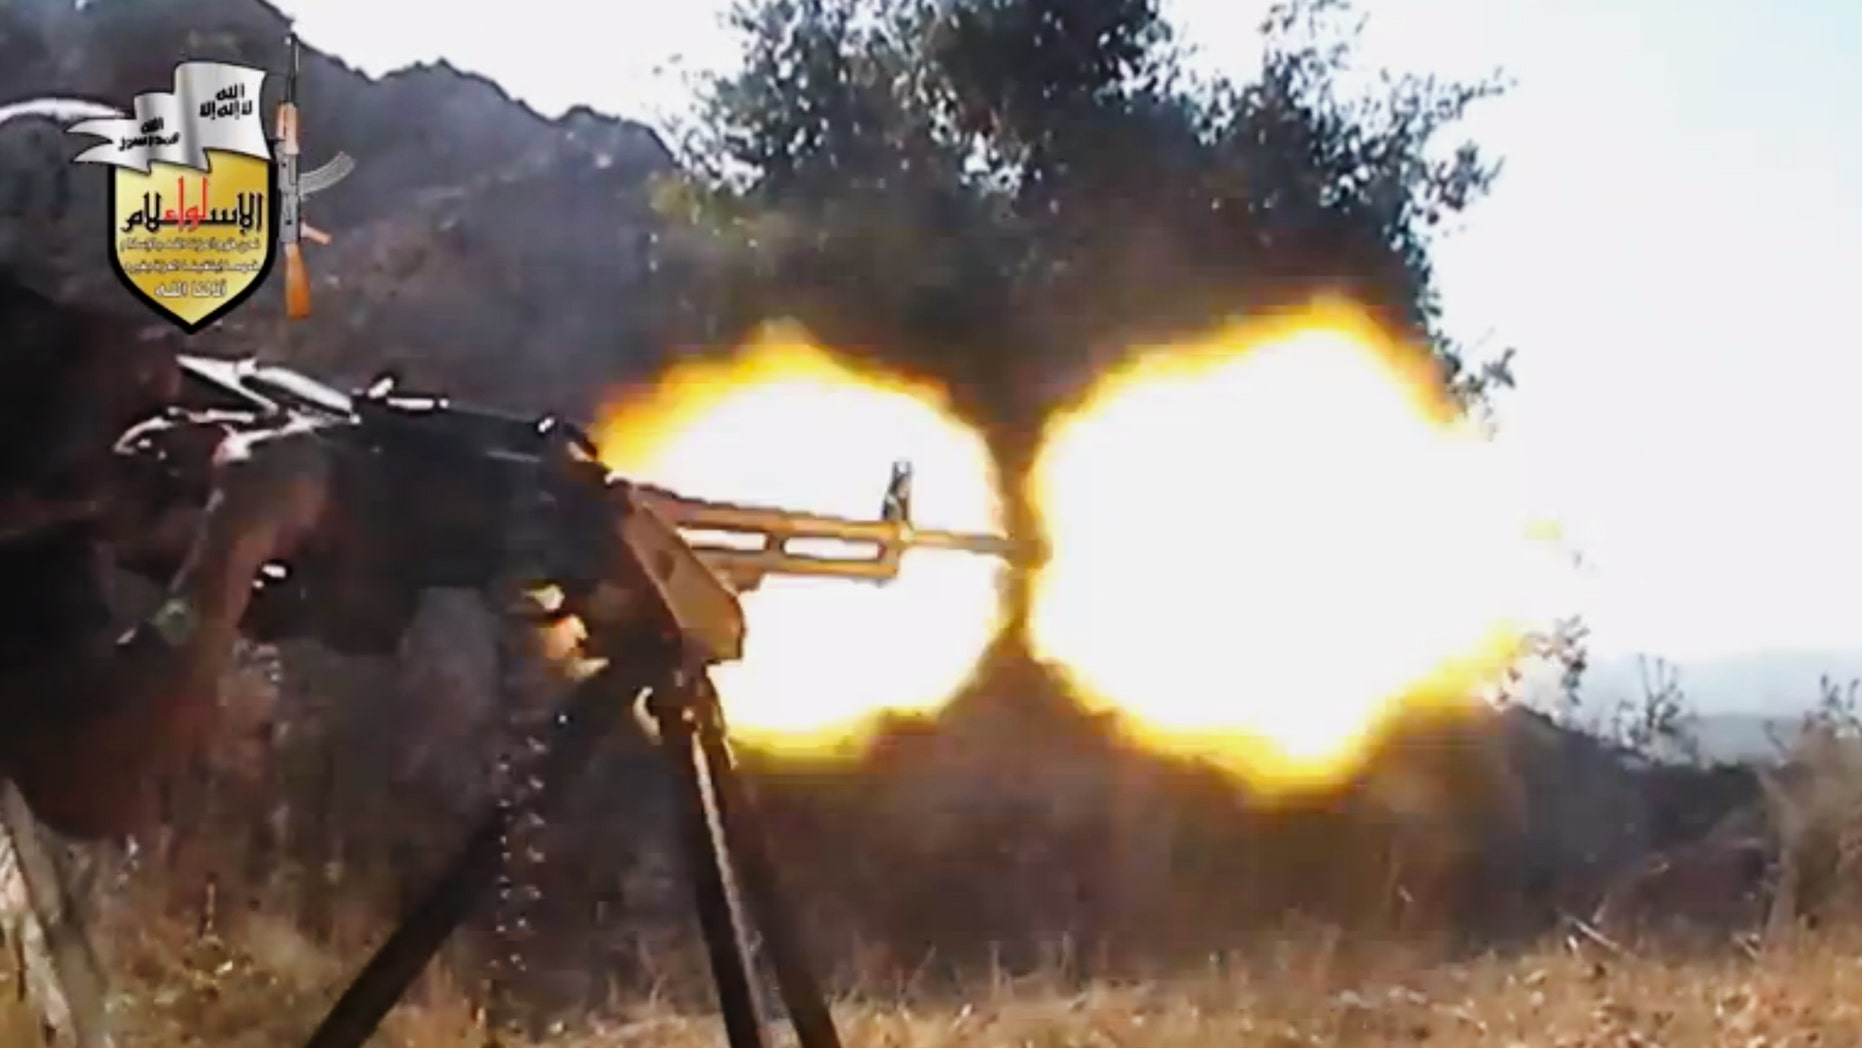 FILE - In this file image taken from Sunday, Aug. 11, 2013, video obtained from the Shaam News Network, which has been authenticated based on its contents and other AP reporting, a rebel fighter fires a gun in a valley in an unidentified location in Latakia province, Syria. Jihadi-led rebel fighters in Syria killed at least 190 civilians and abducted more than 200 during an offensive against pro-regime villages, committing a war crime, an international human rights group said Friday, Oct. 11, 2013. (AP Photo/Shaam News Network via AP Video, File)